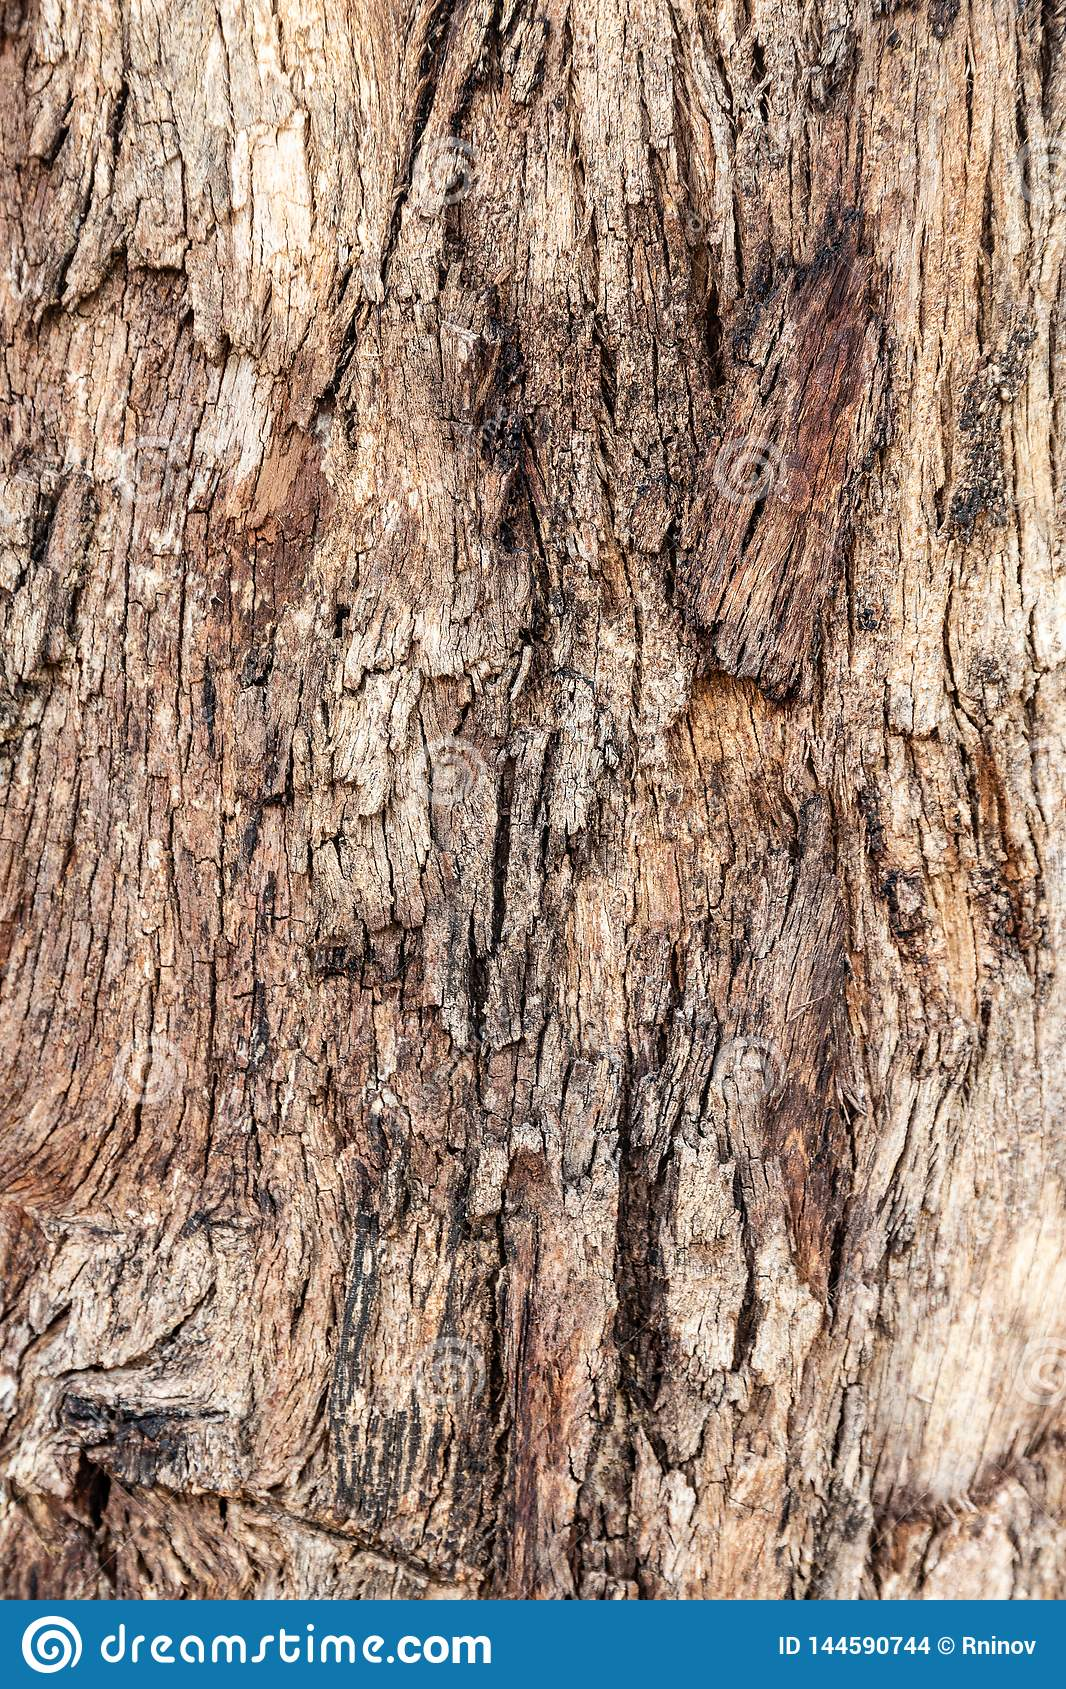 Texture of tree bark